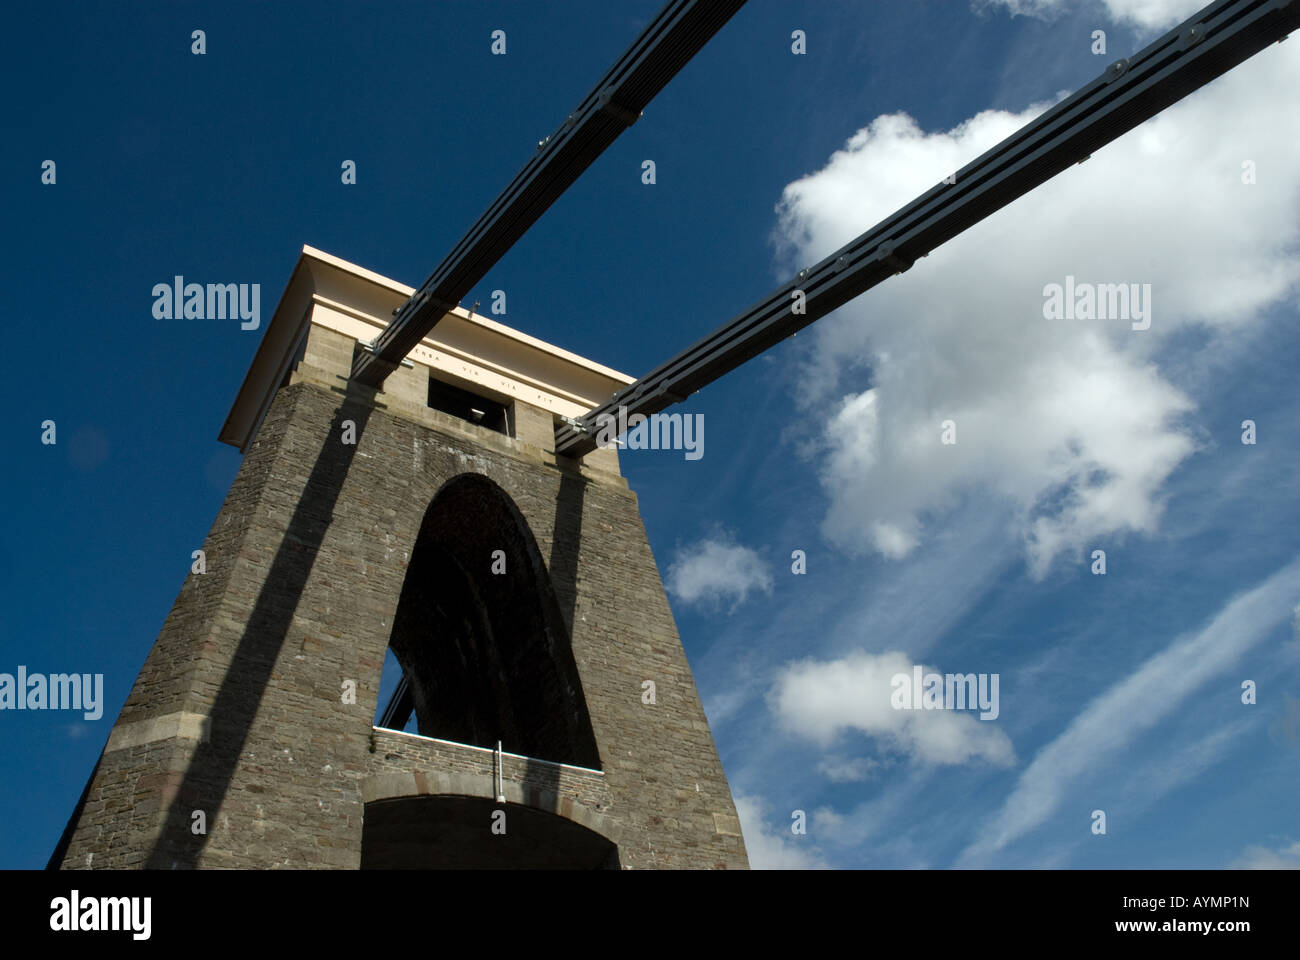 Tower of the Clifton Suspension Bridge - Stock Image